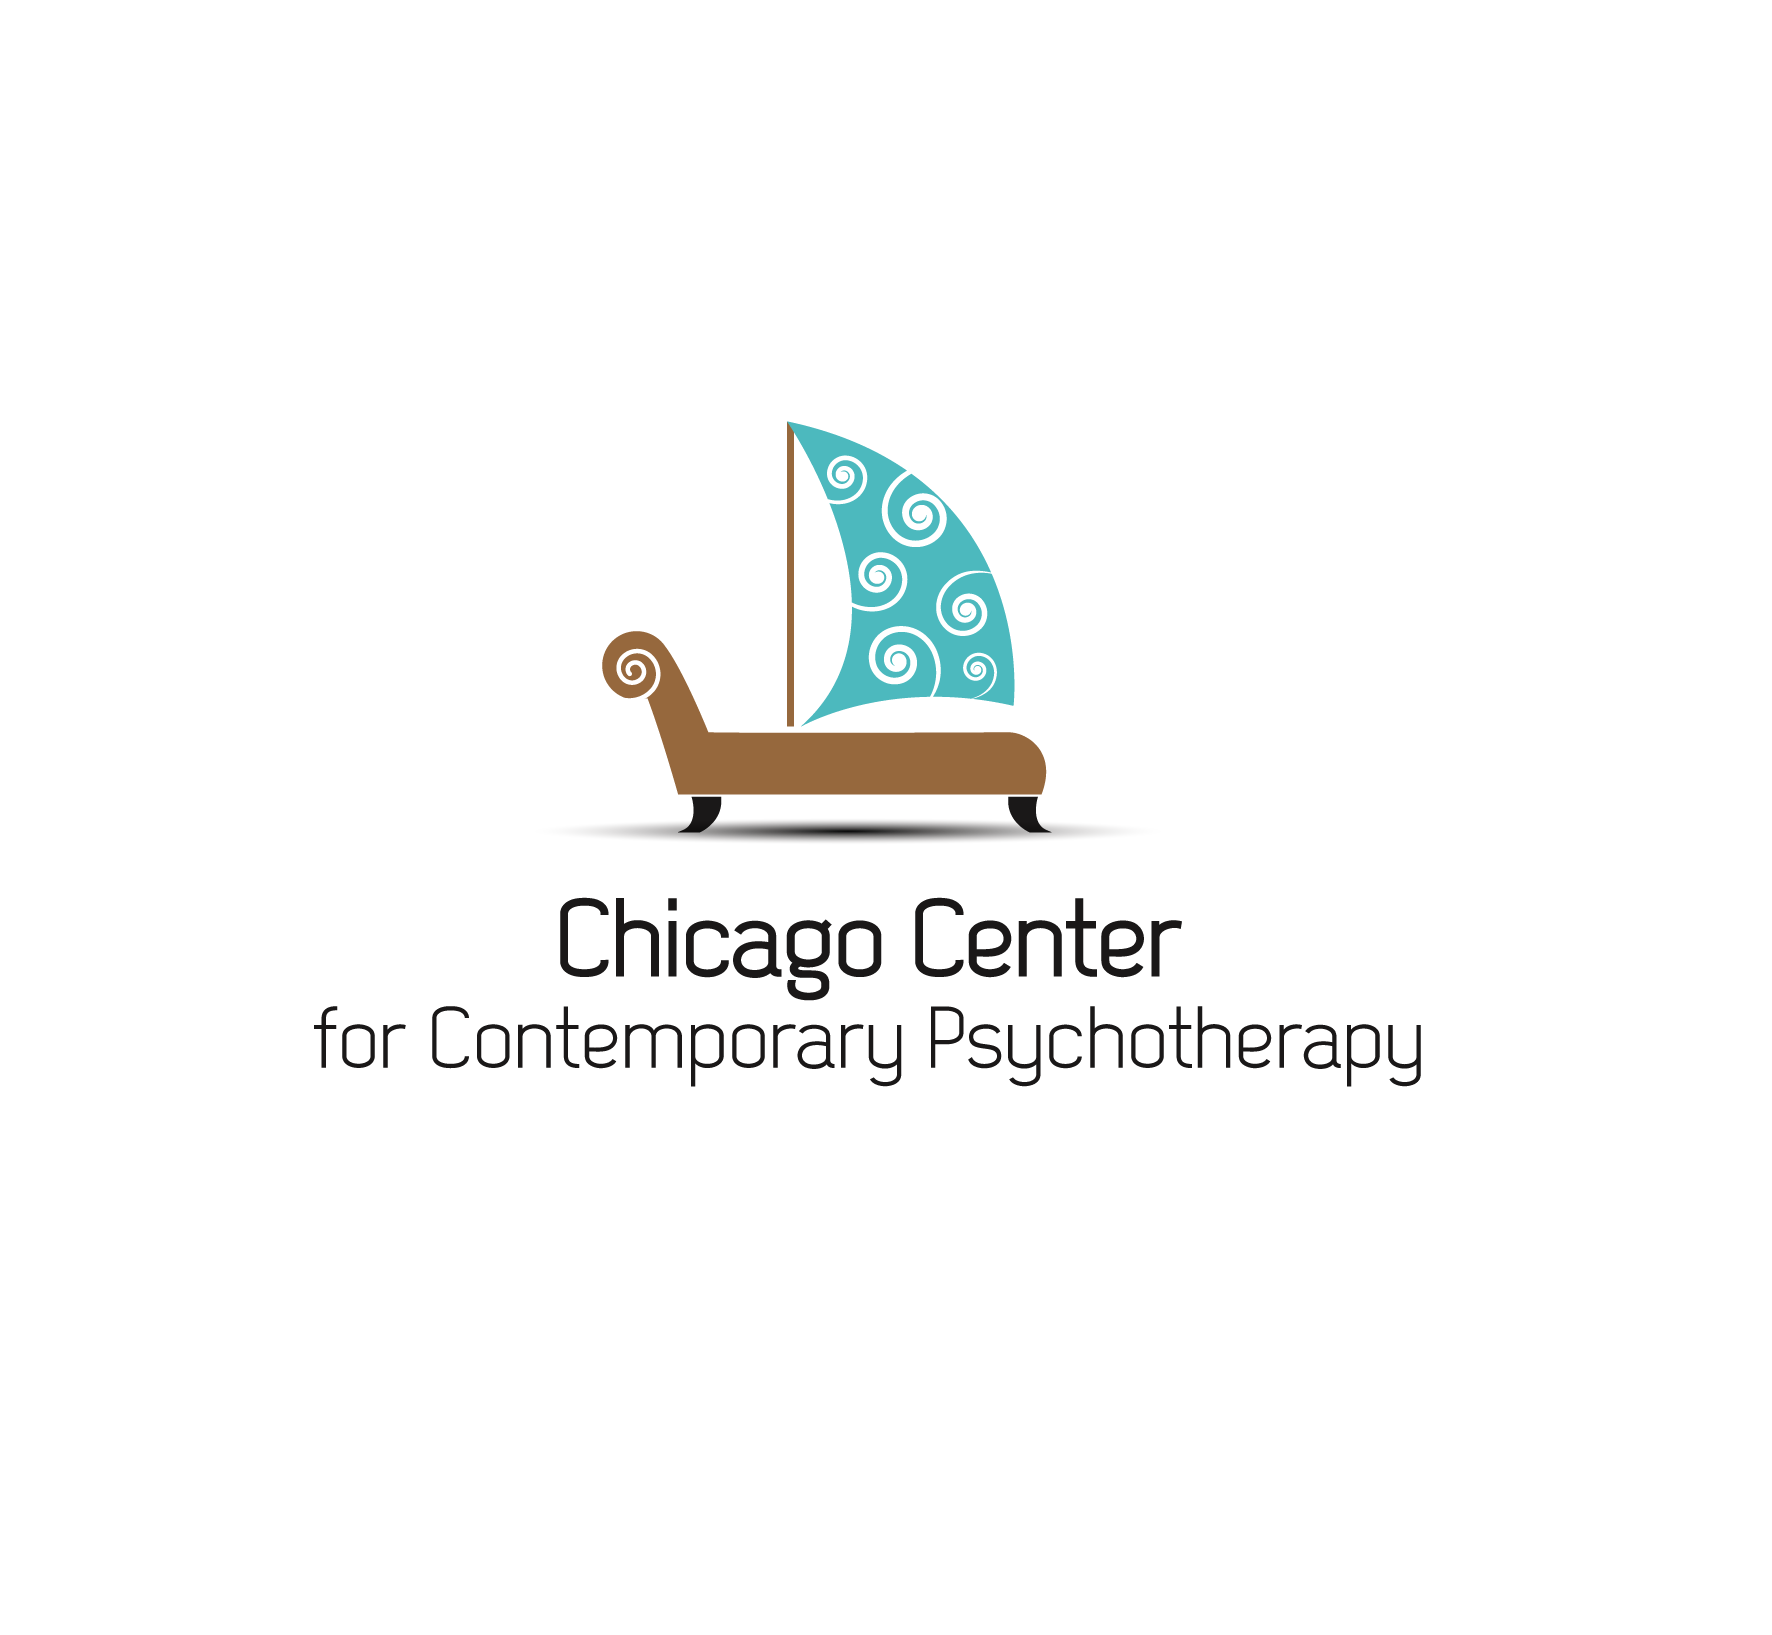 Logo Design by luna - Entry No. 7 in the Logo Design Contest Inspiring Logo Design for Chicago Center for Contemporary Psychotherapy.